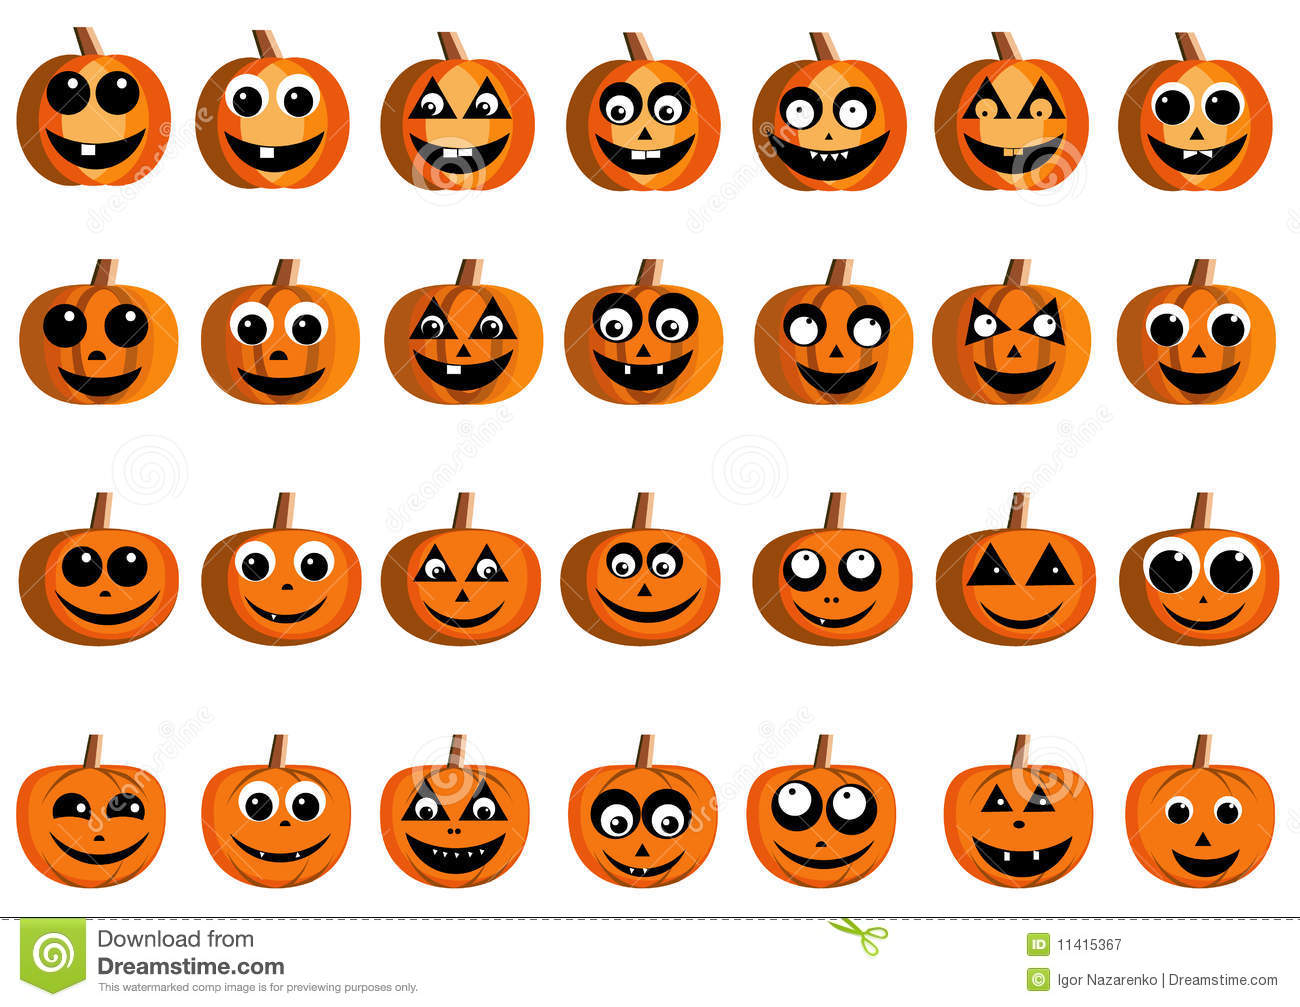 Happy pumpkin faces stock vector. Illustration of happy - 11415367